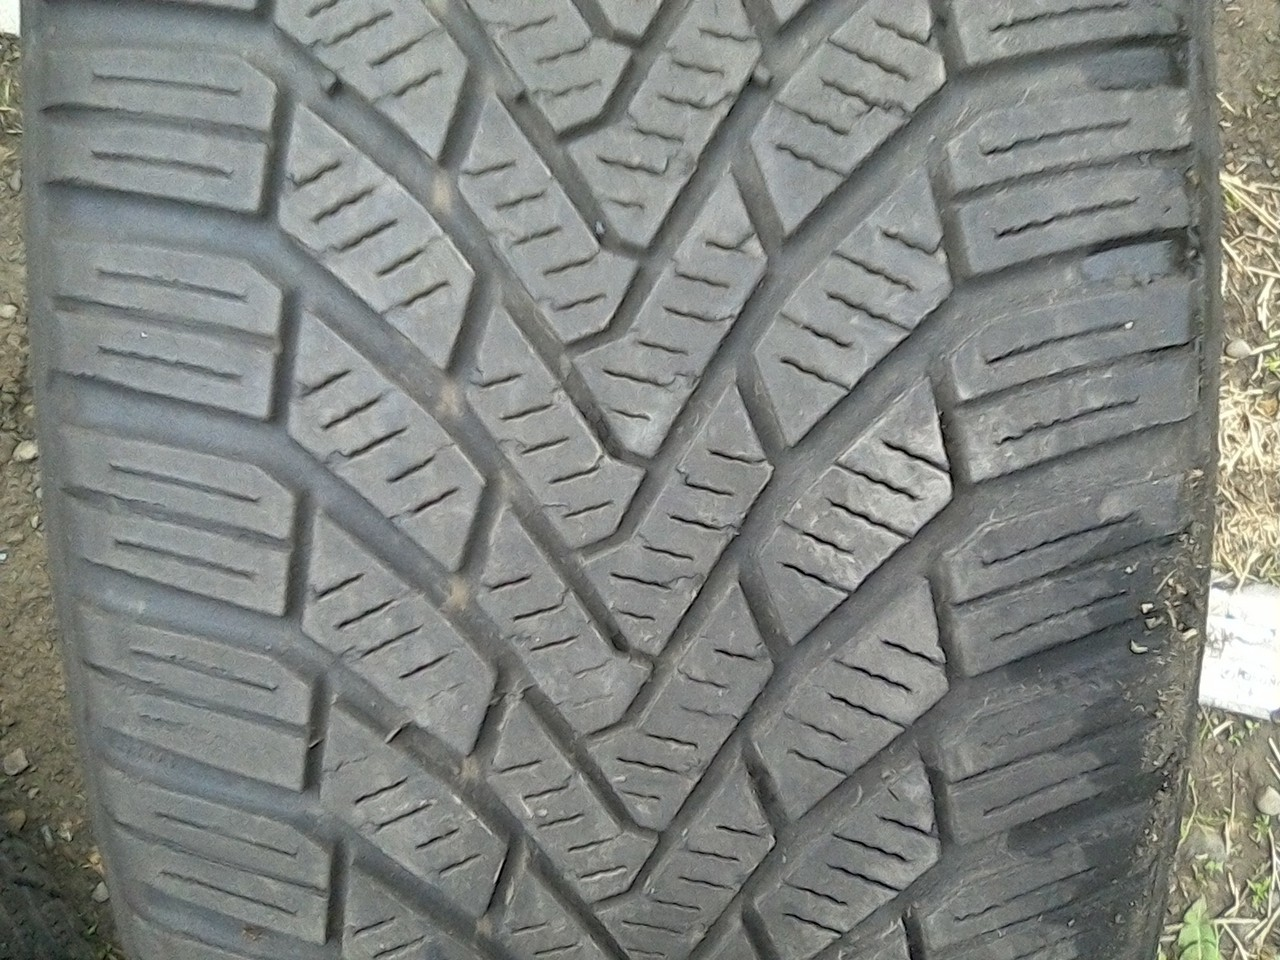 205/55 R16 CONTINENTAL CONTI WINTER CONTACT TS 850 91T 5мм